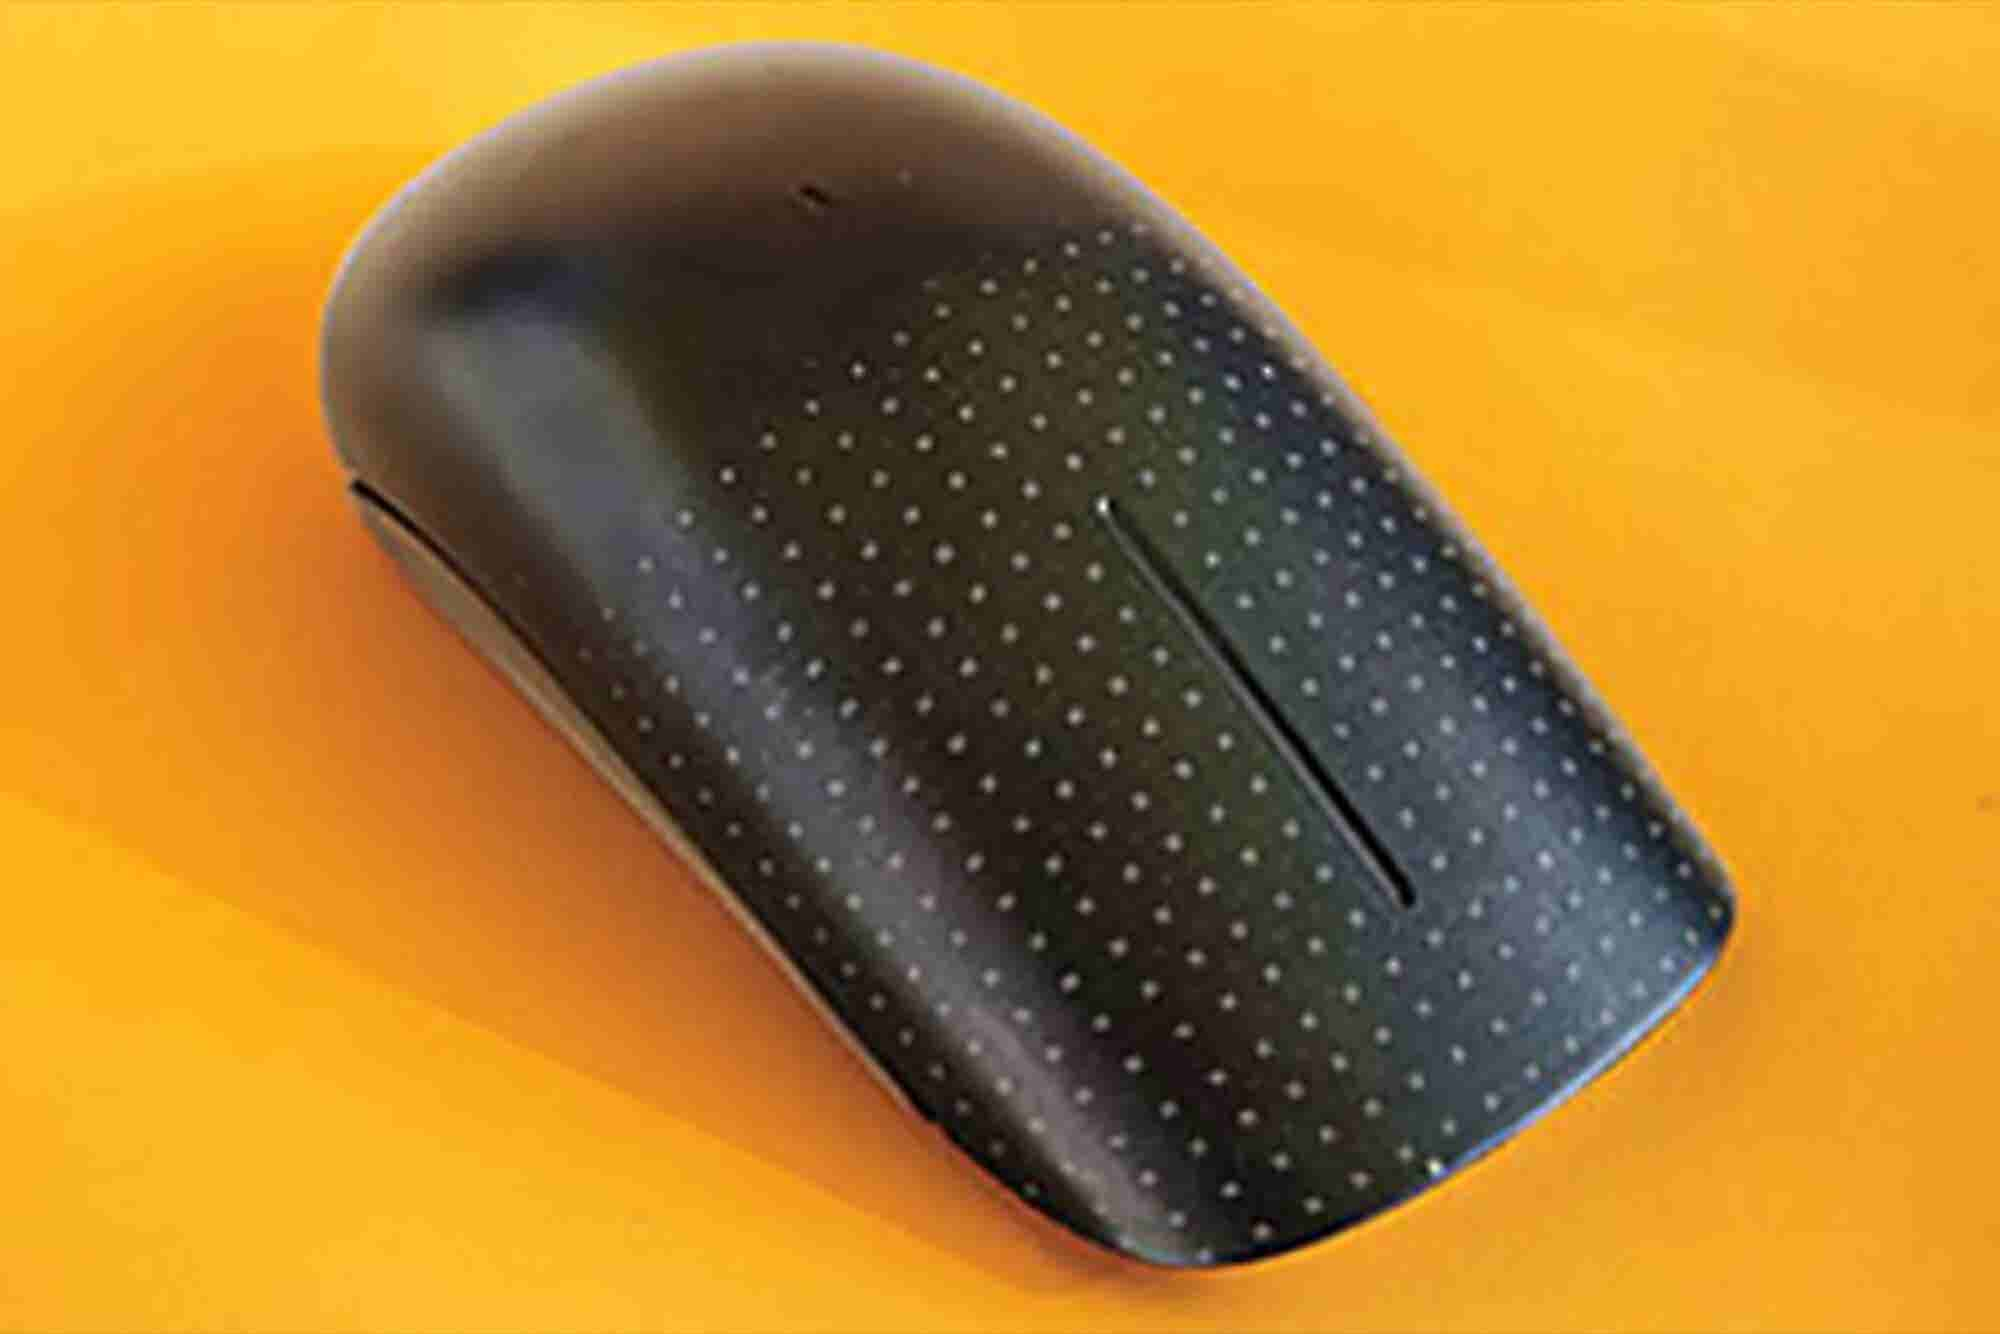 A Touch of Improvement: A Look at the New Microsoft Mouse